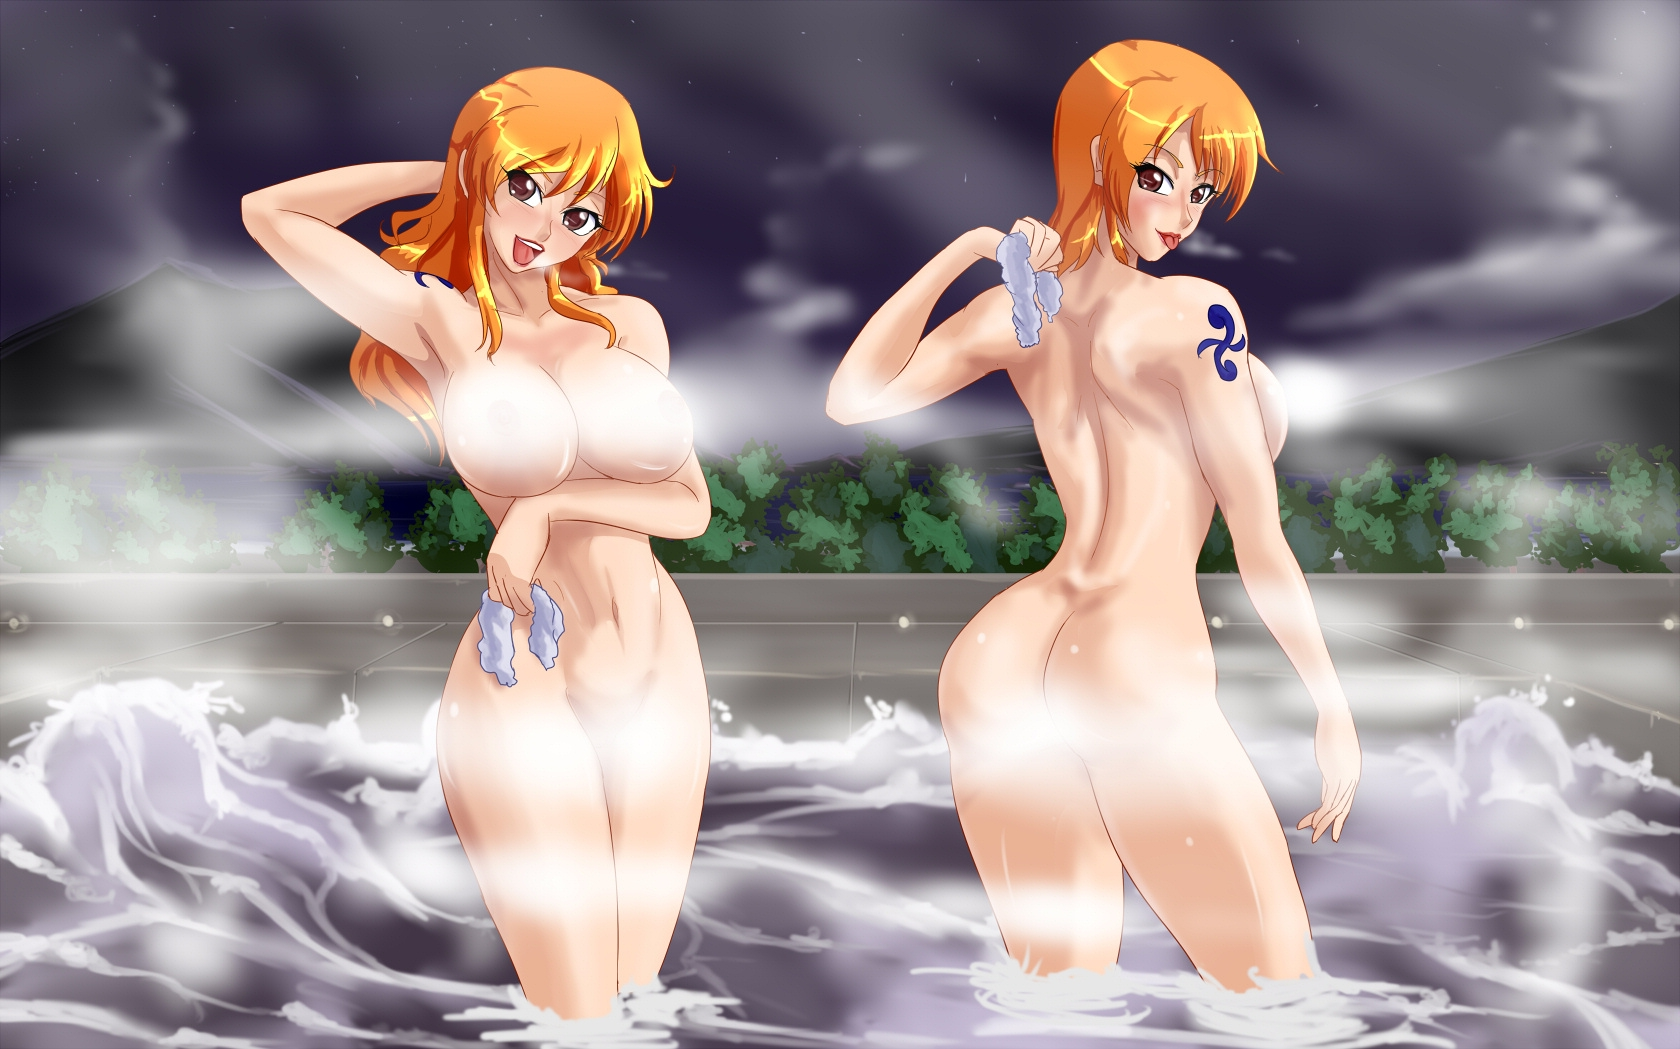 Toon sex pic ##0001301215691 female 2girls approximated aspect ratio armpits arms up ass blush breasts brown eyess censored convenient censoring dual persona female highres large breasts long hair looking at viewer looking back mountain multiple girls nami navel nude one piece onsen open mouth orange hair short hair sky standing steam tattoo water